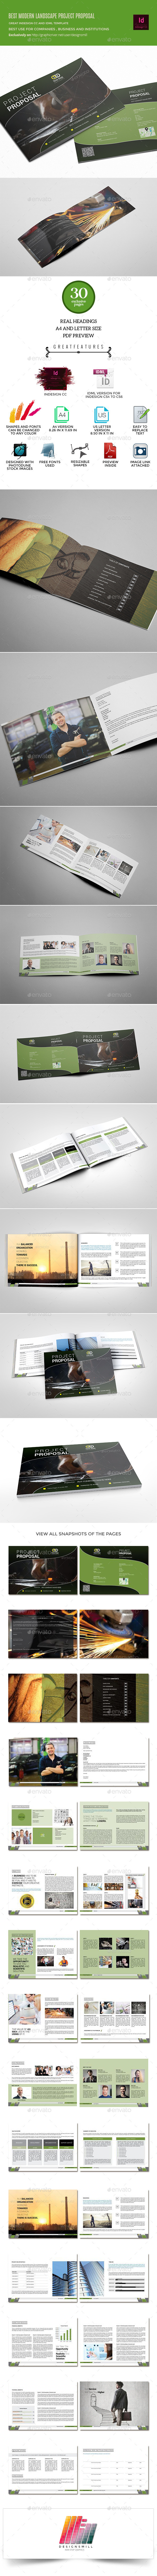 GraphicRiver Three Rings Project Proposal Template 10196937